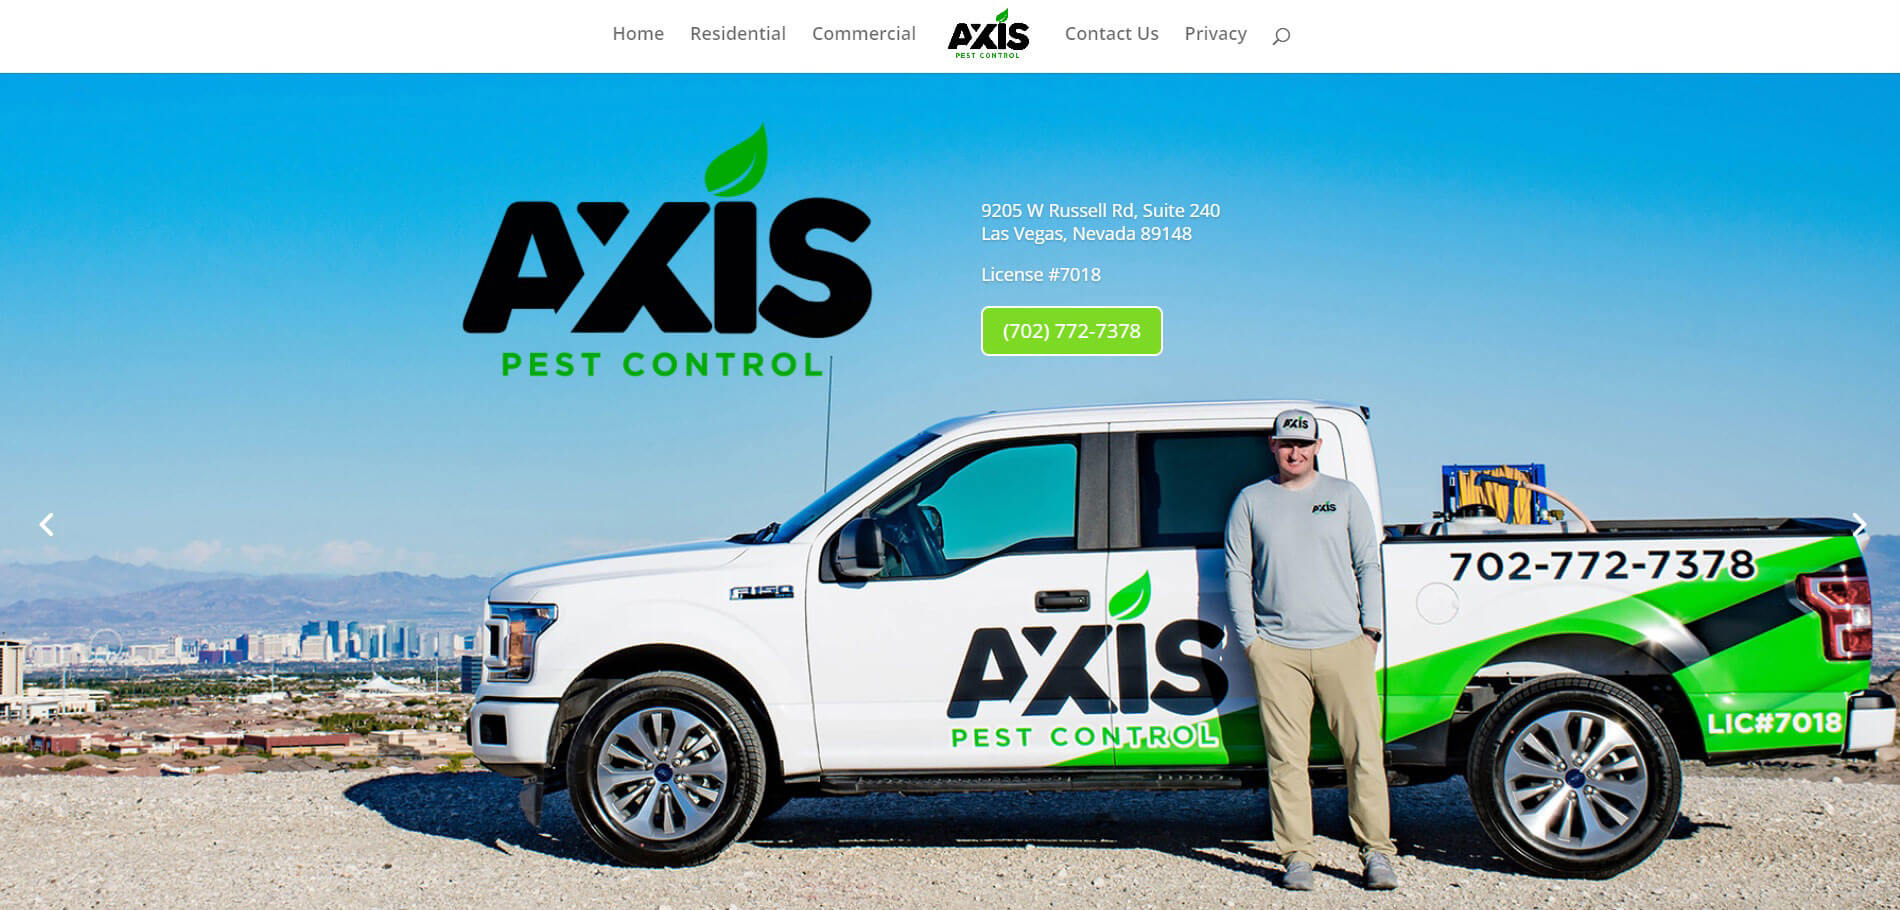 axis pest control